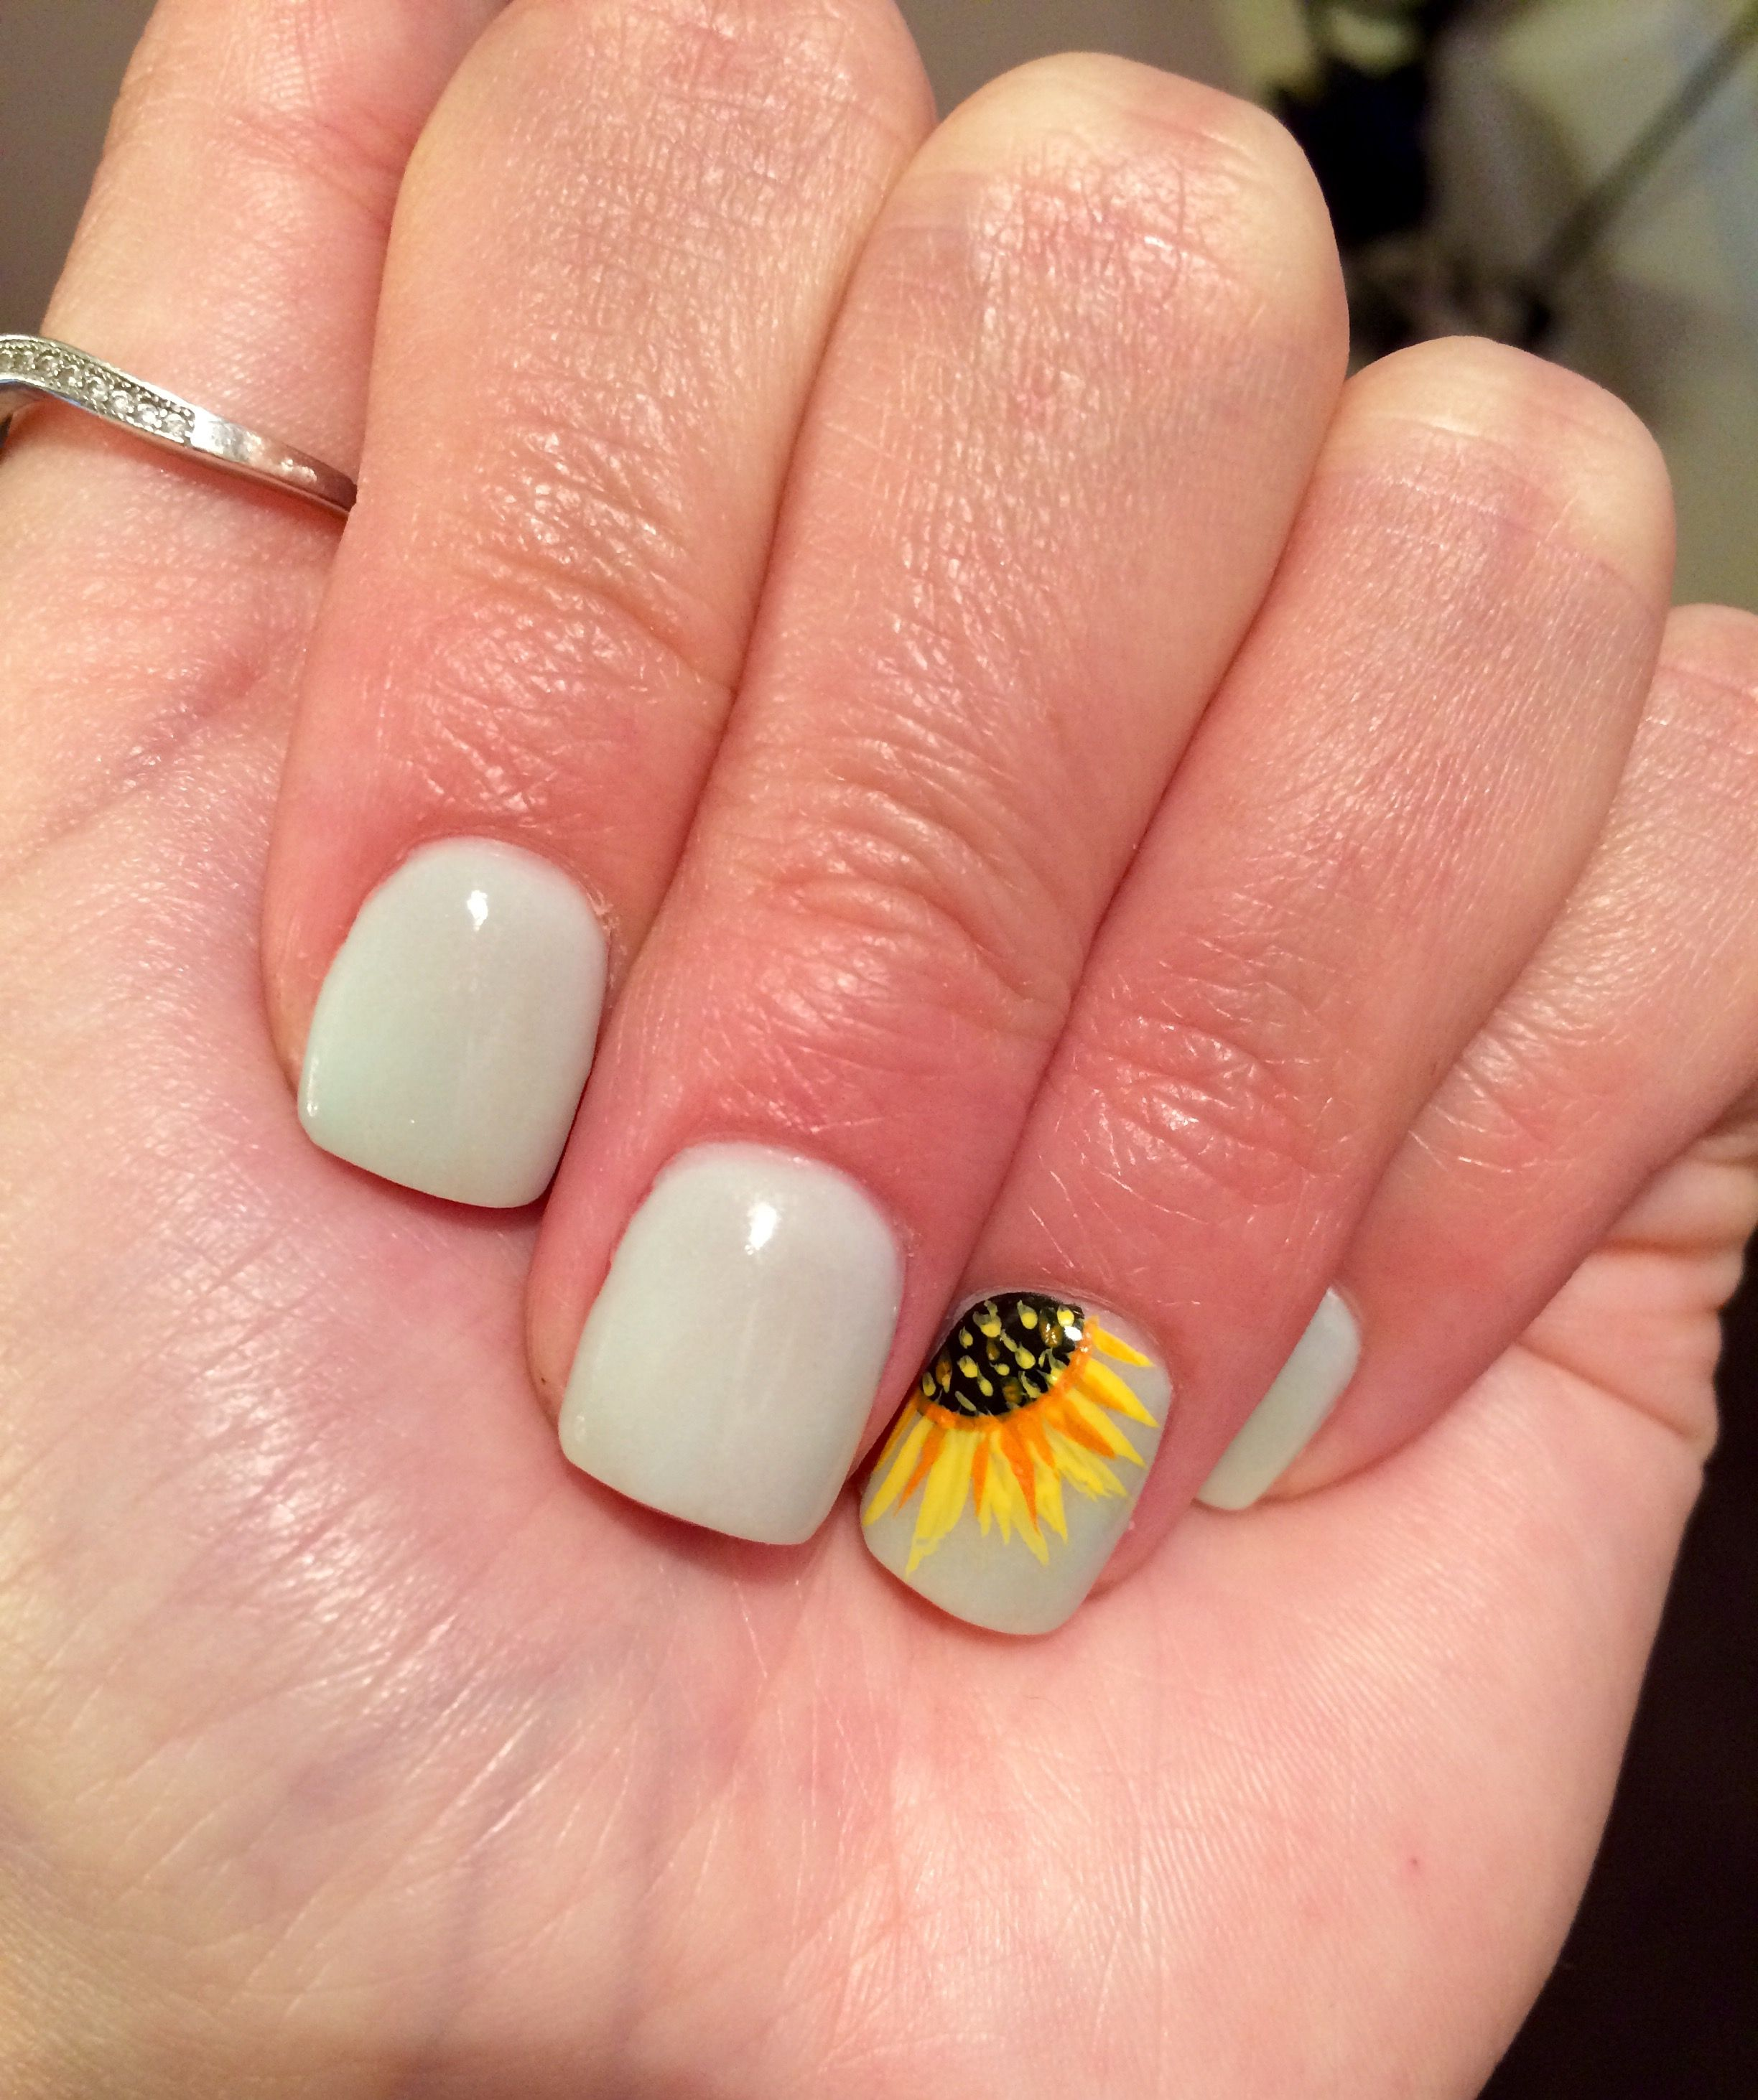 sunflower nails! #lightseafoamgreen #cute #sunflower https